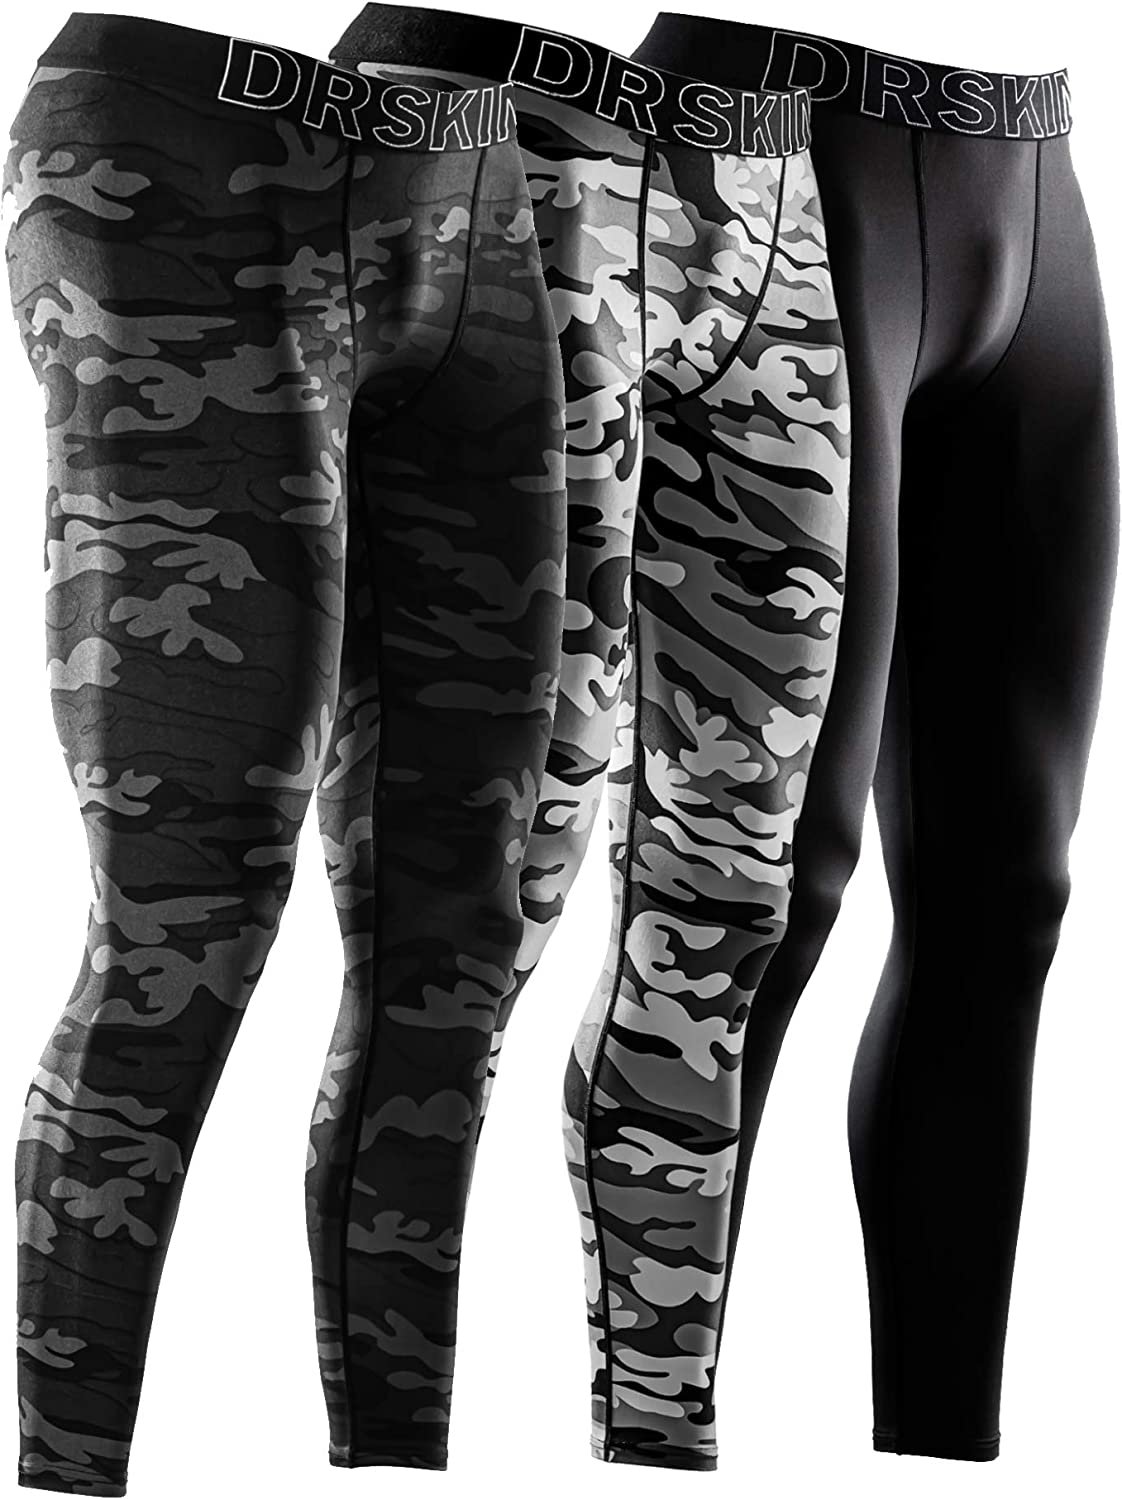 DRSKIN 1, 2 or 3 Pack Men's Compression Pants Dry Sports Baselayer Running Workout Tights Leggings Yoga Thermal : Clothing